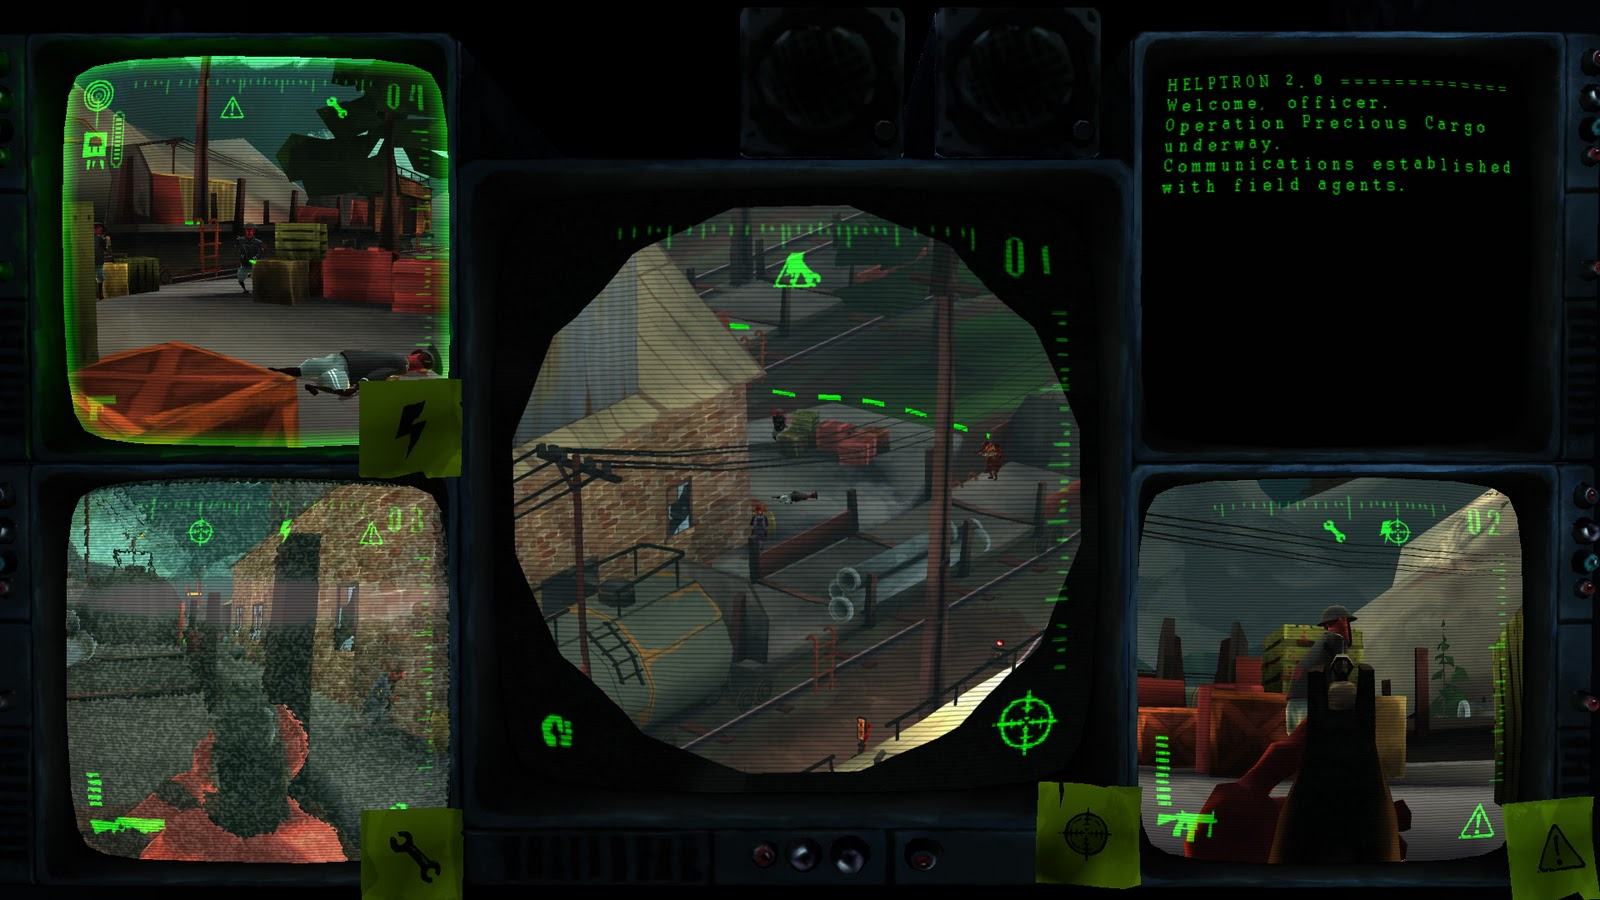 Upcoming Linux Game 'Signal Ops' to have Innovative Multi View Point